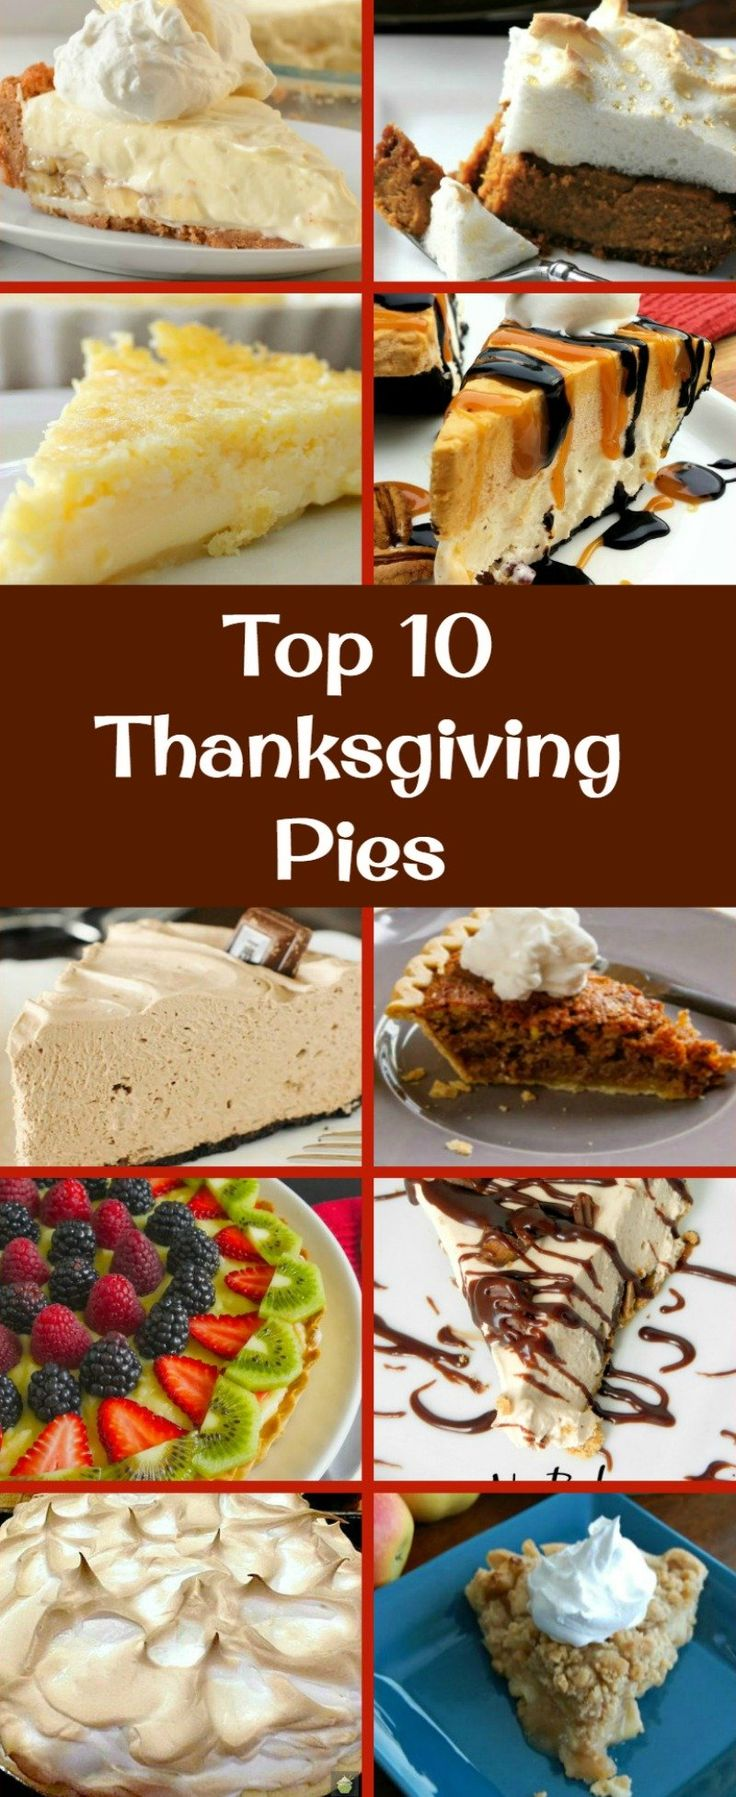 The BEST Top 10 Thanksgiving Dessert Pies. Here's a great selection of the very BEST of the BEST sweet pies you can make for Thanksgiving. Possible to Make ahead too!   Lovefoodies.com